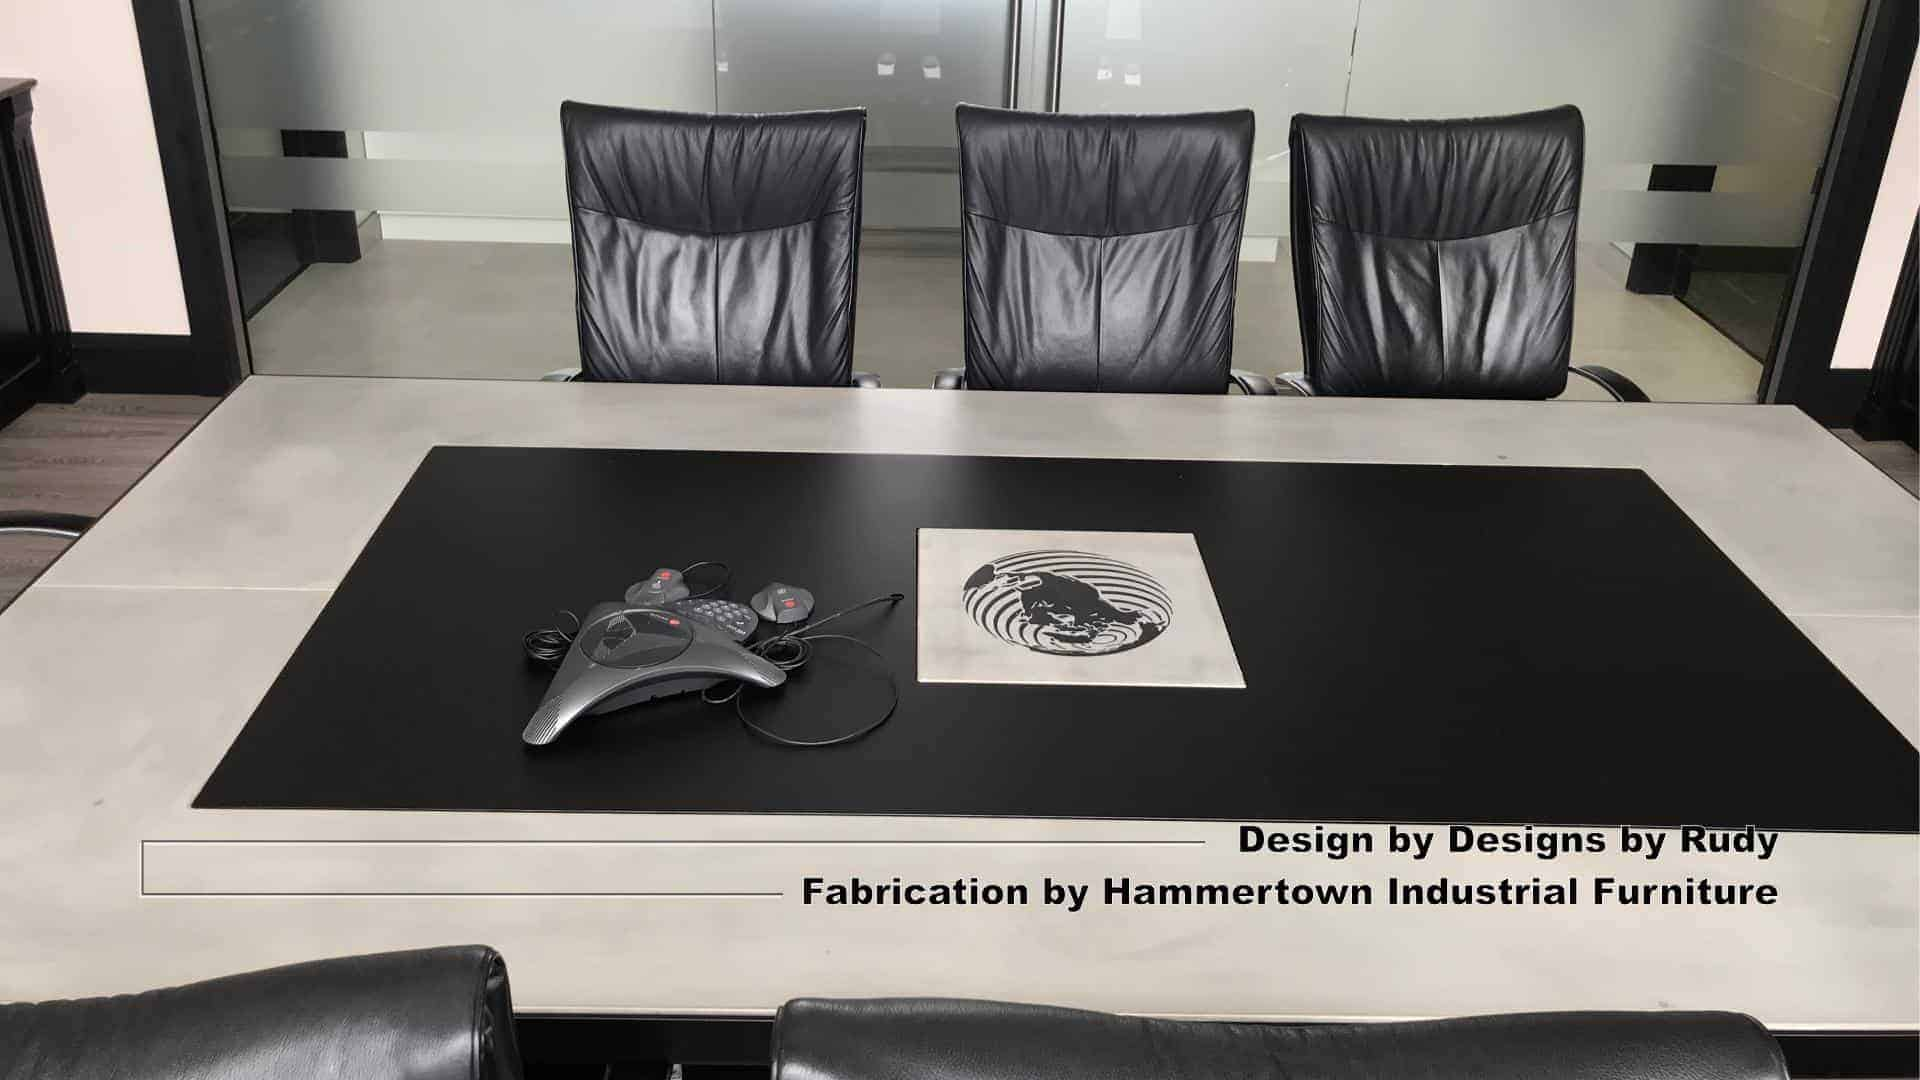 4 Concrete and steel boardroom table for NAC, Designs by Rudy, Hammertown Industrial Furniture, angle view